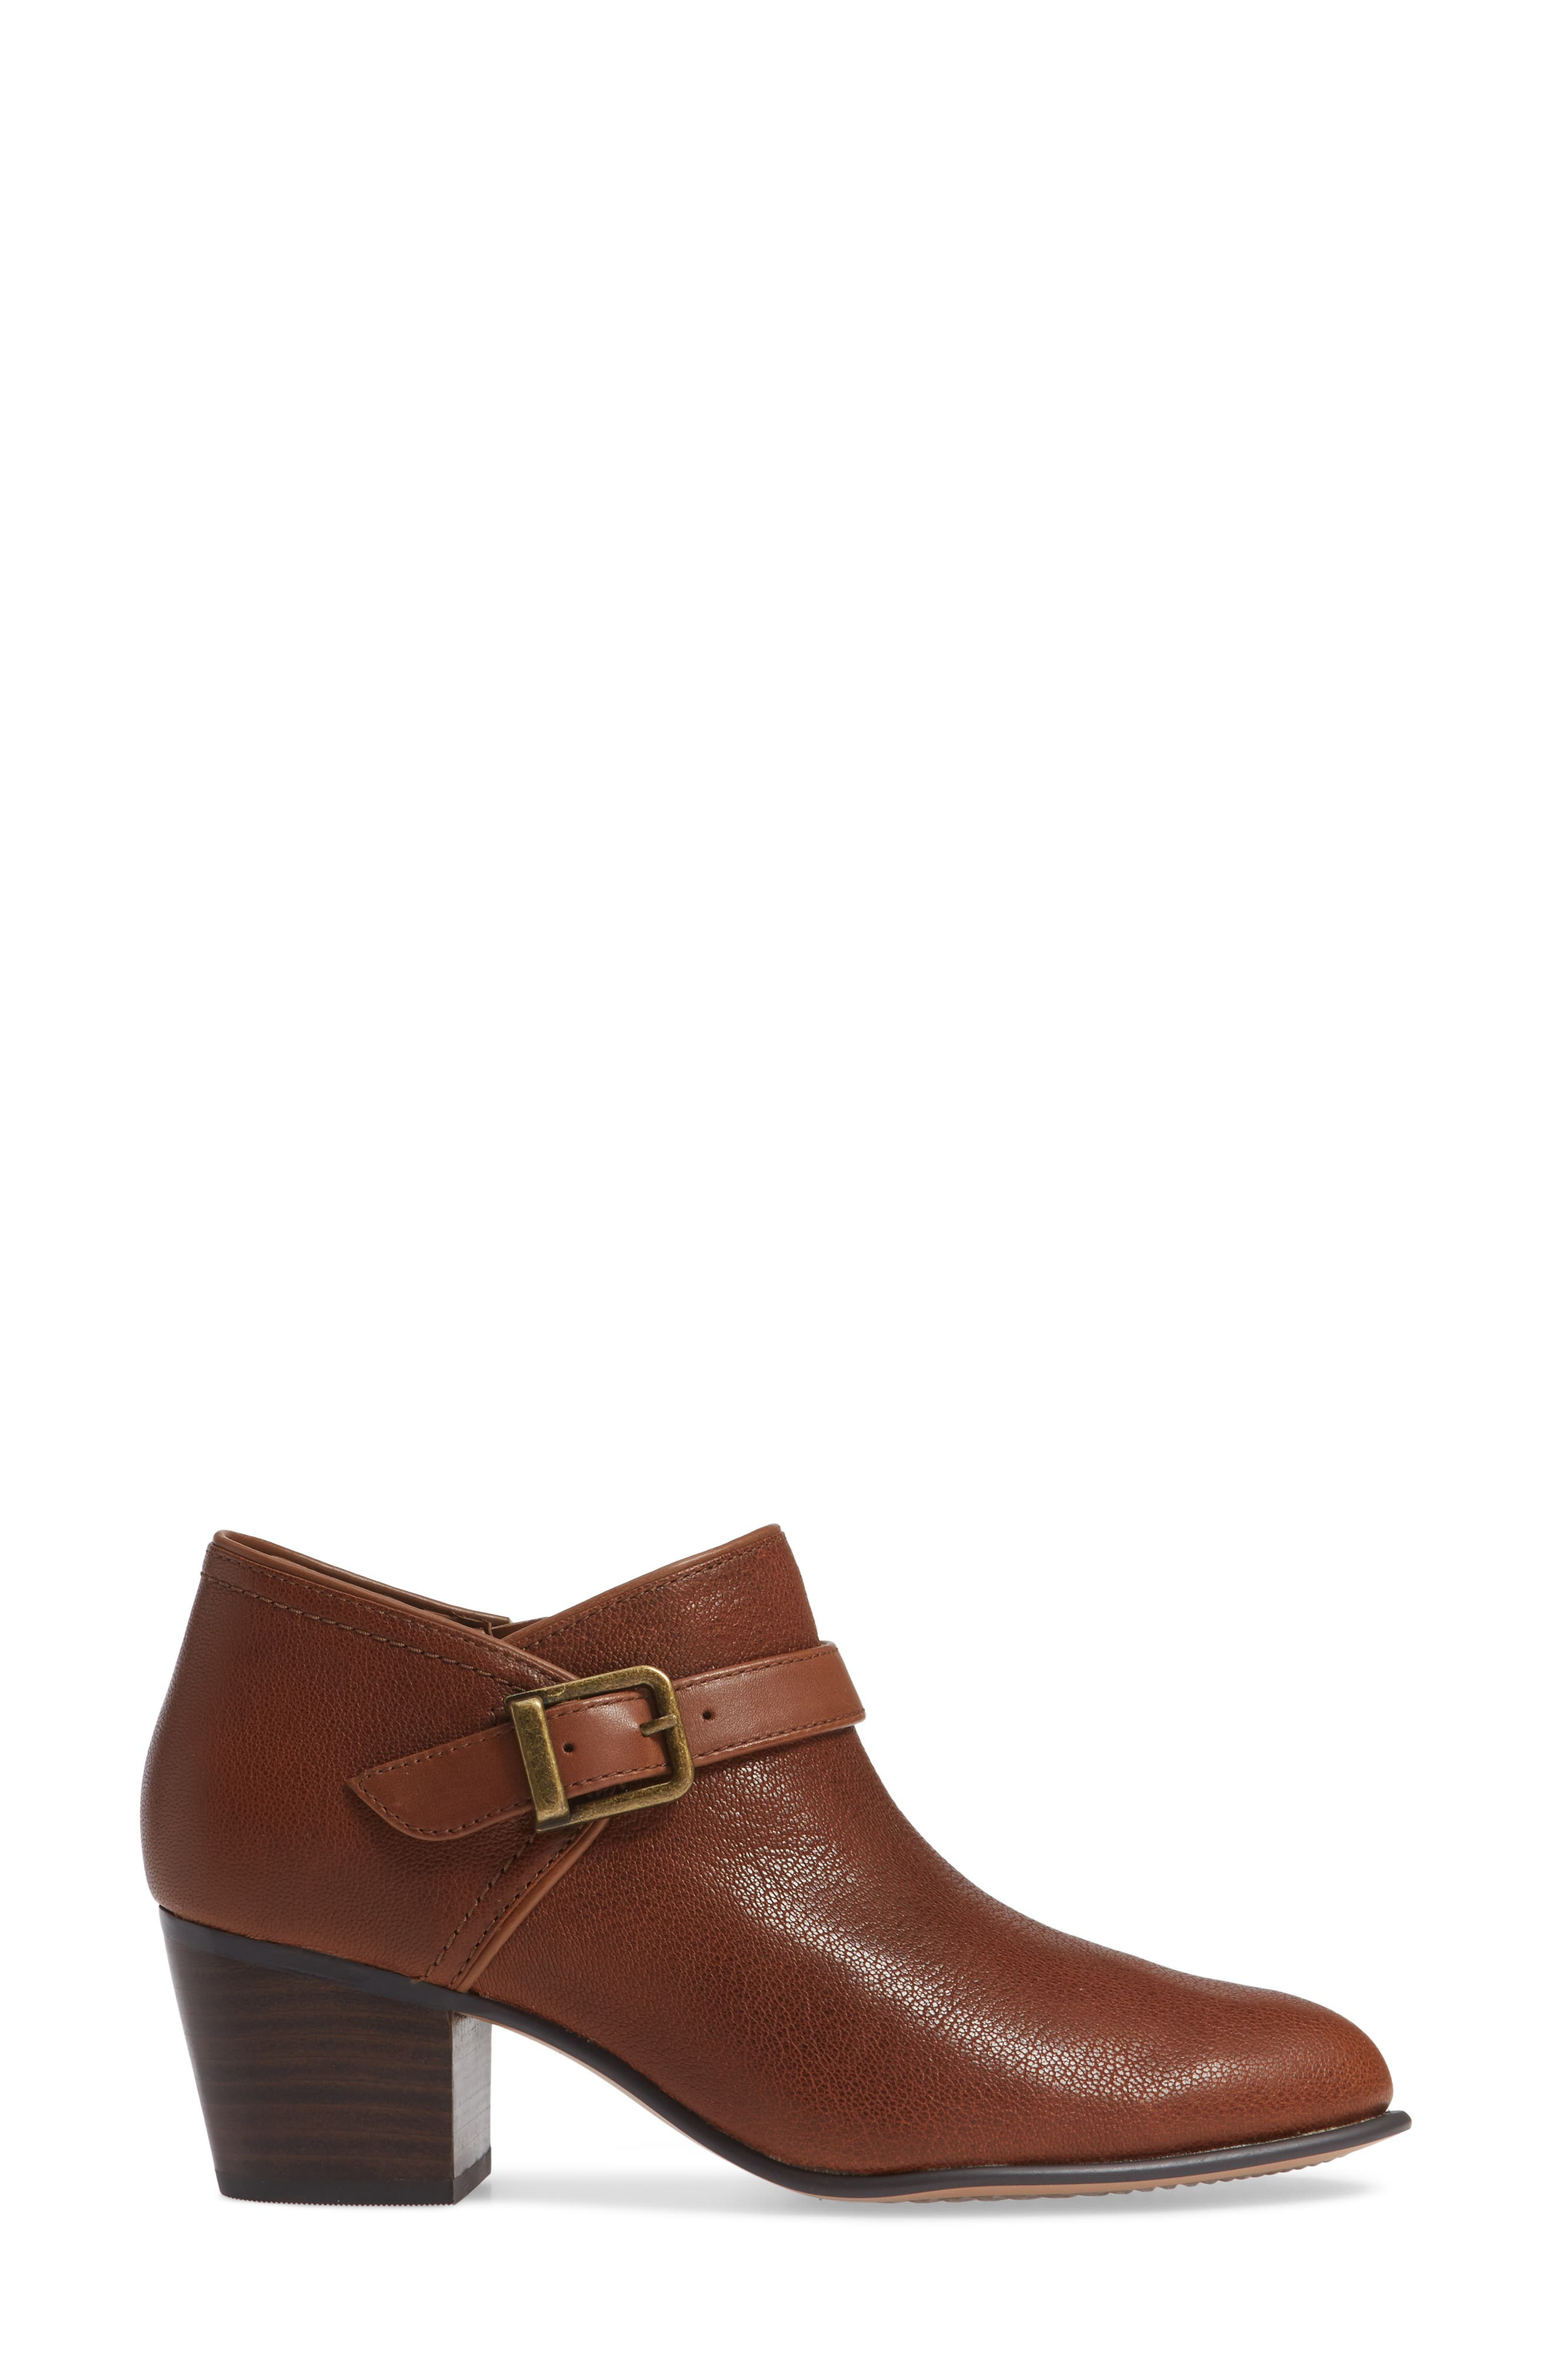 Maypearl Milla Bootie,                             Alternate thumbnail 3, color,                             DARK TAN TUMBLED LEATHER